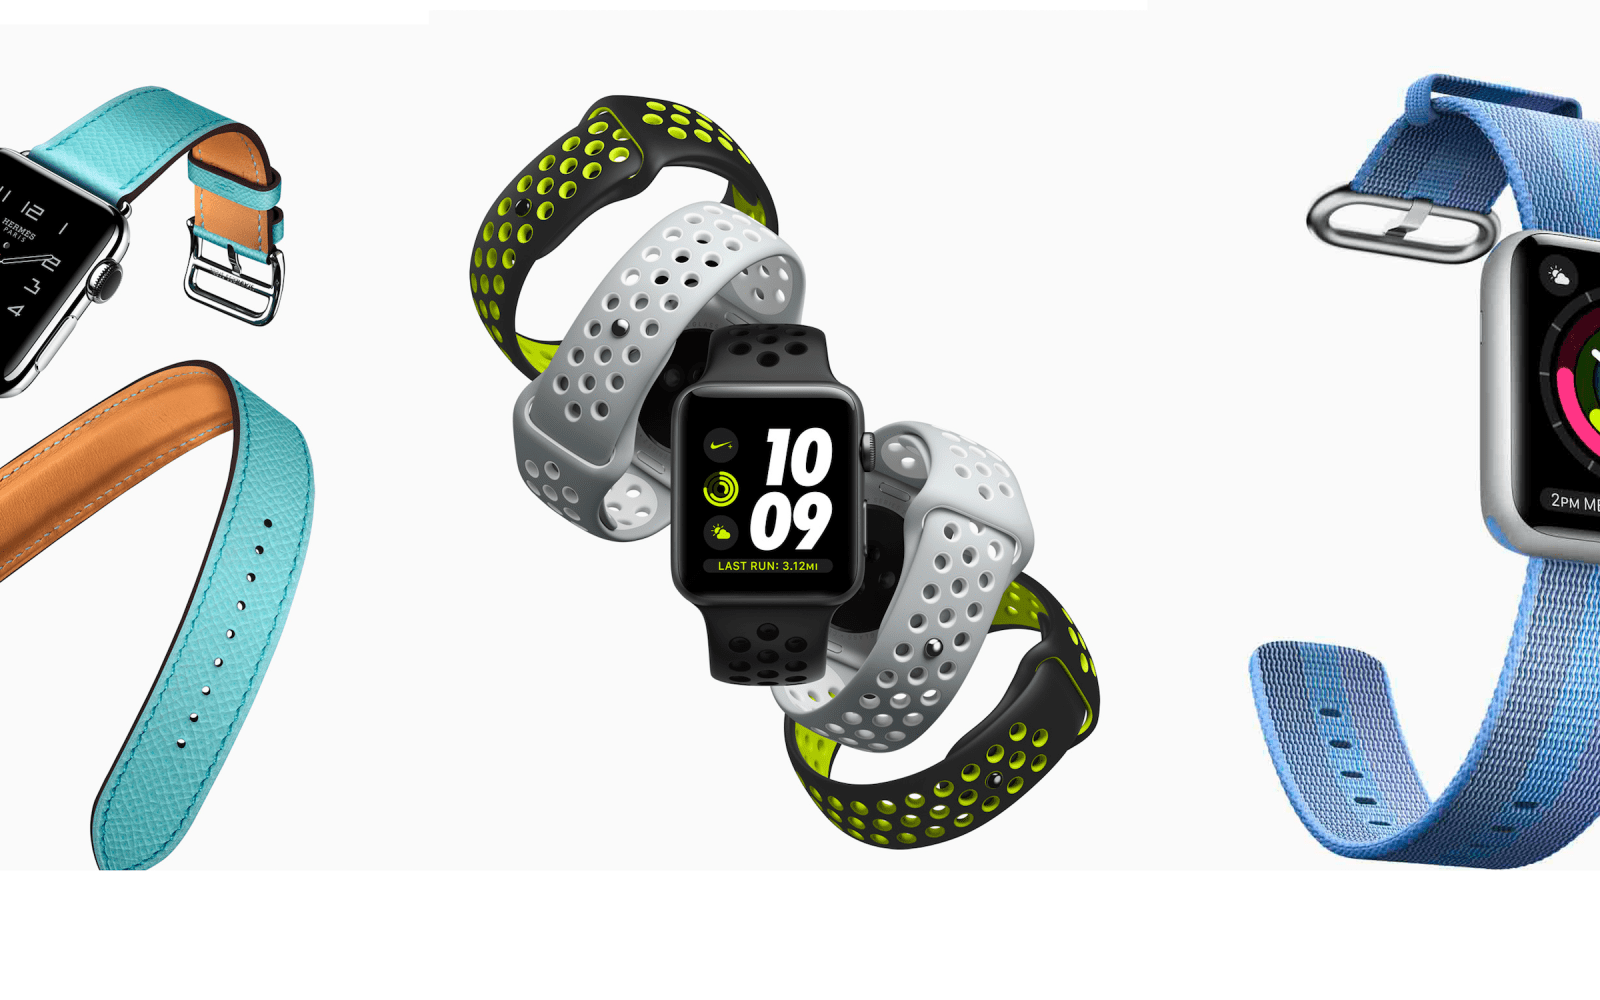 Apple Watch gets new bands for Spring 2017, Nike Sport bands now sold separate